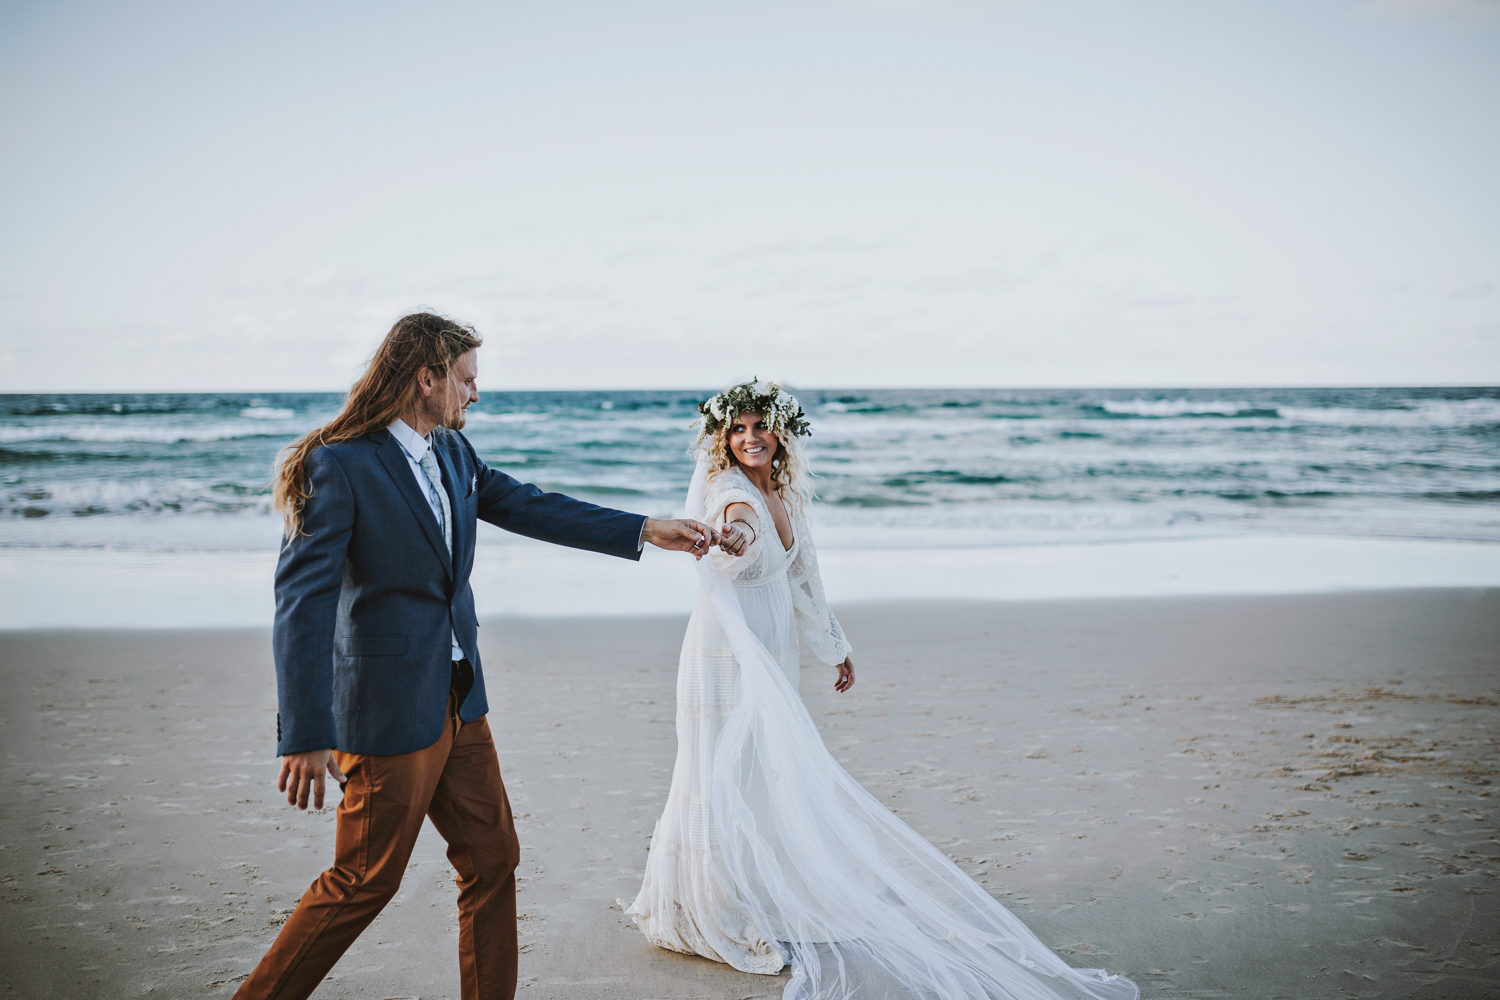 Bride smiles at her groom after their wedding at the beach.